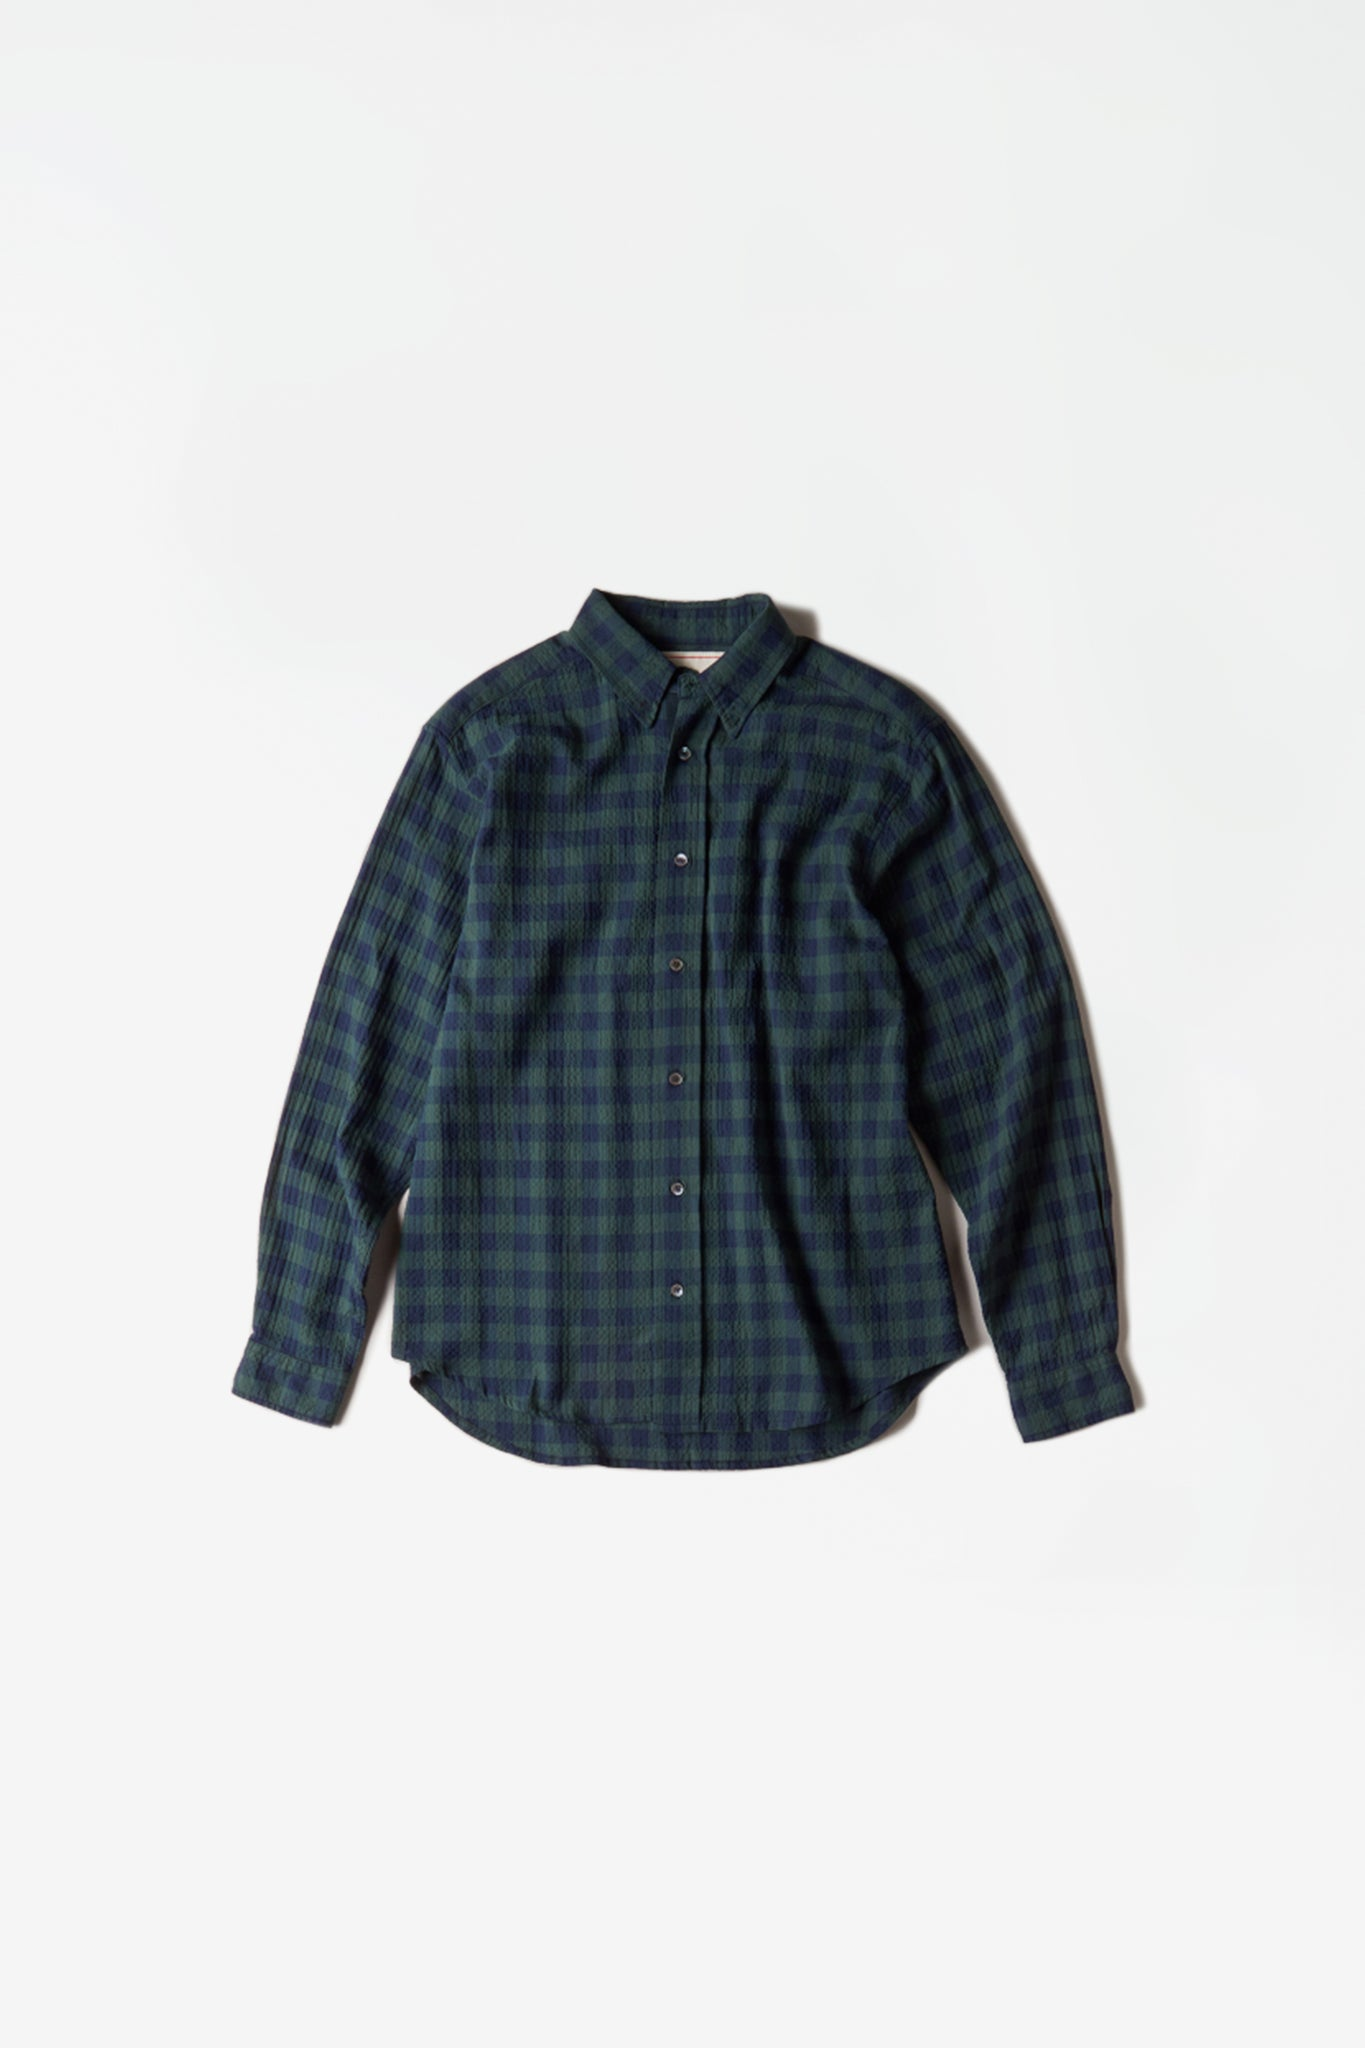 Regular checkered shirt green